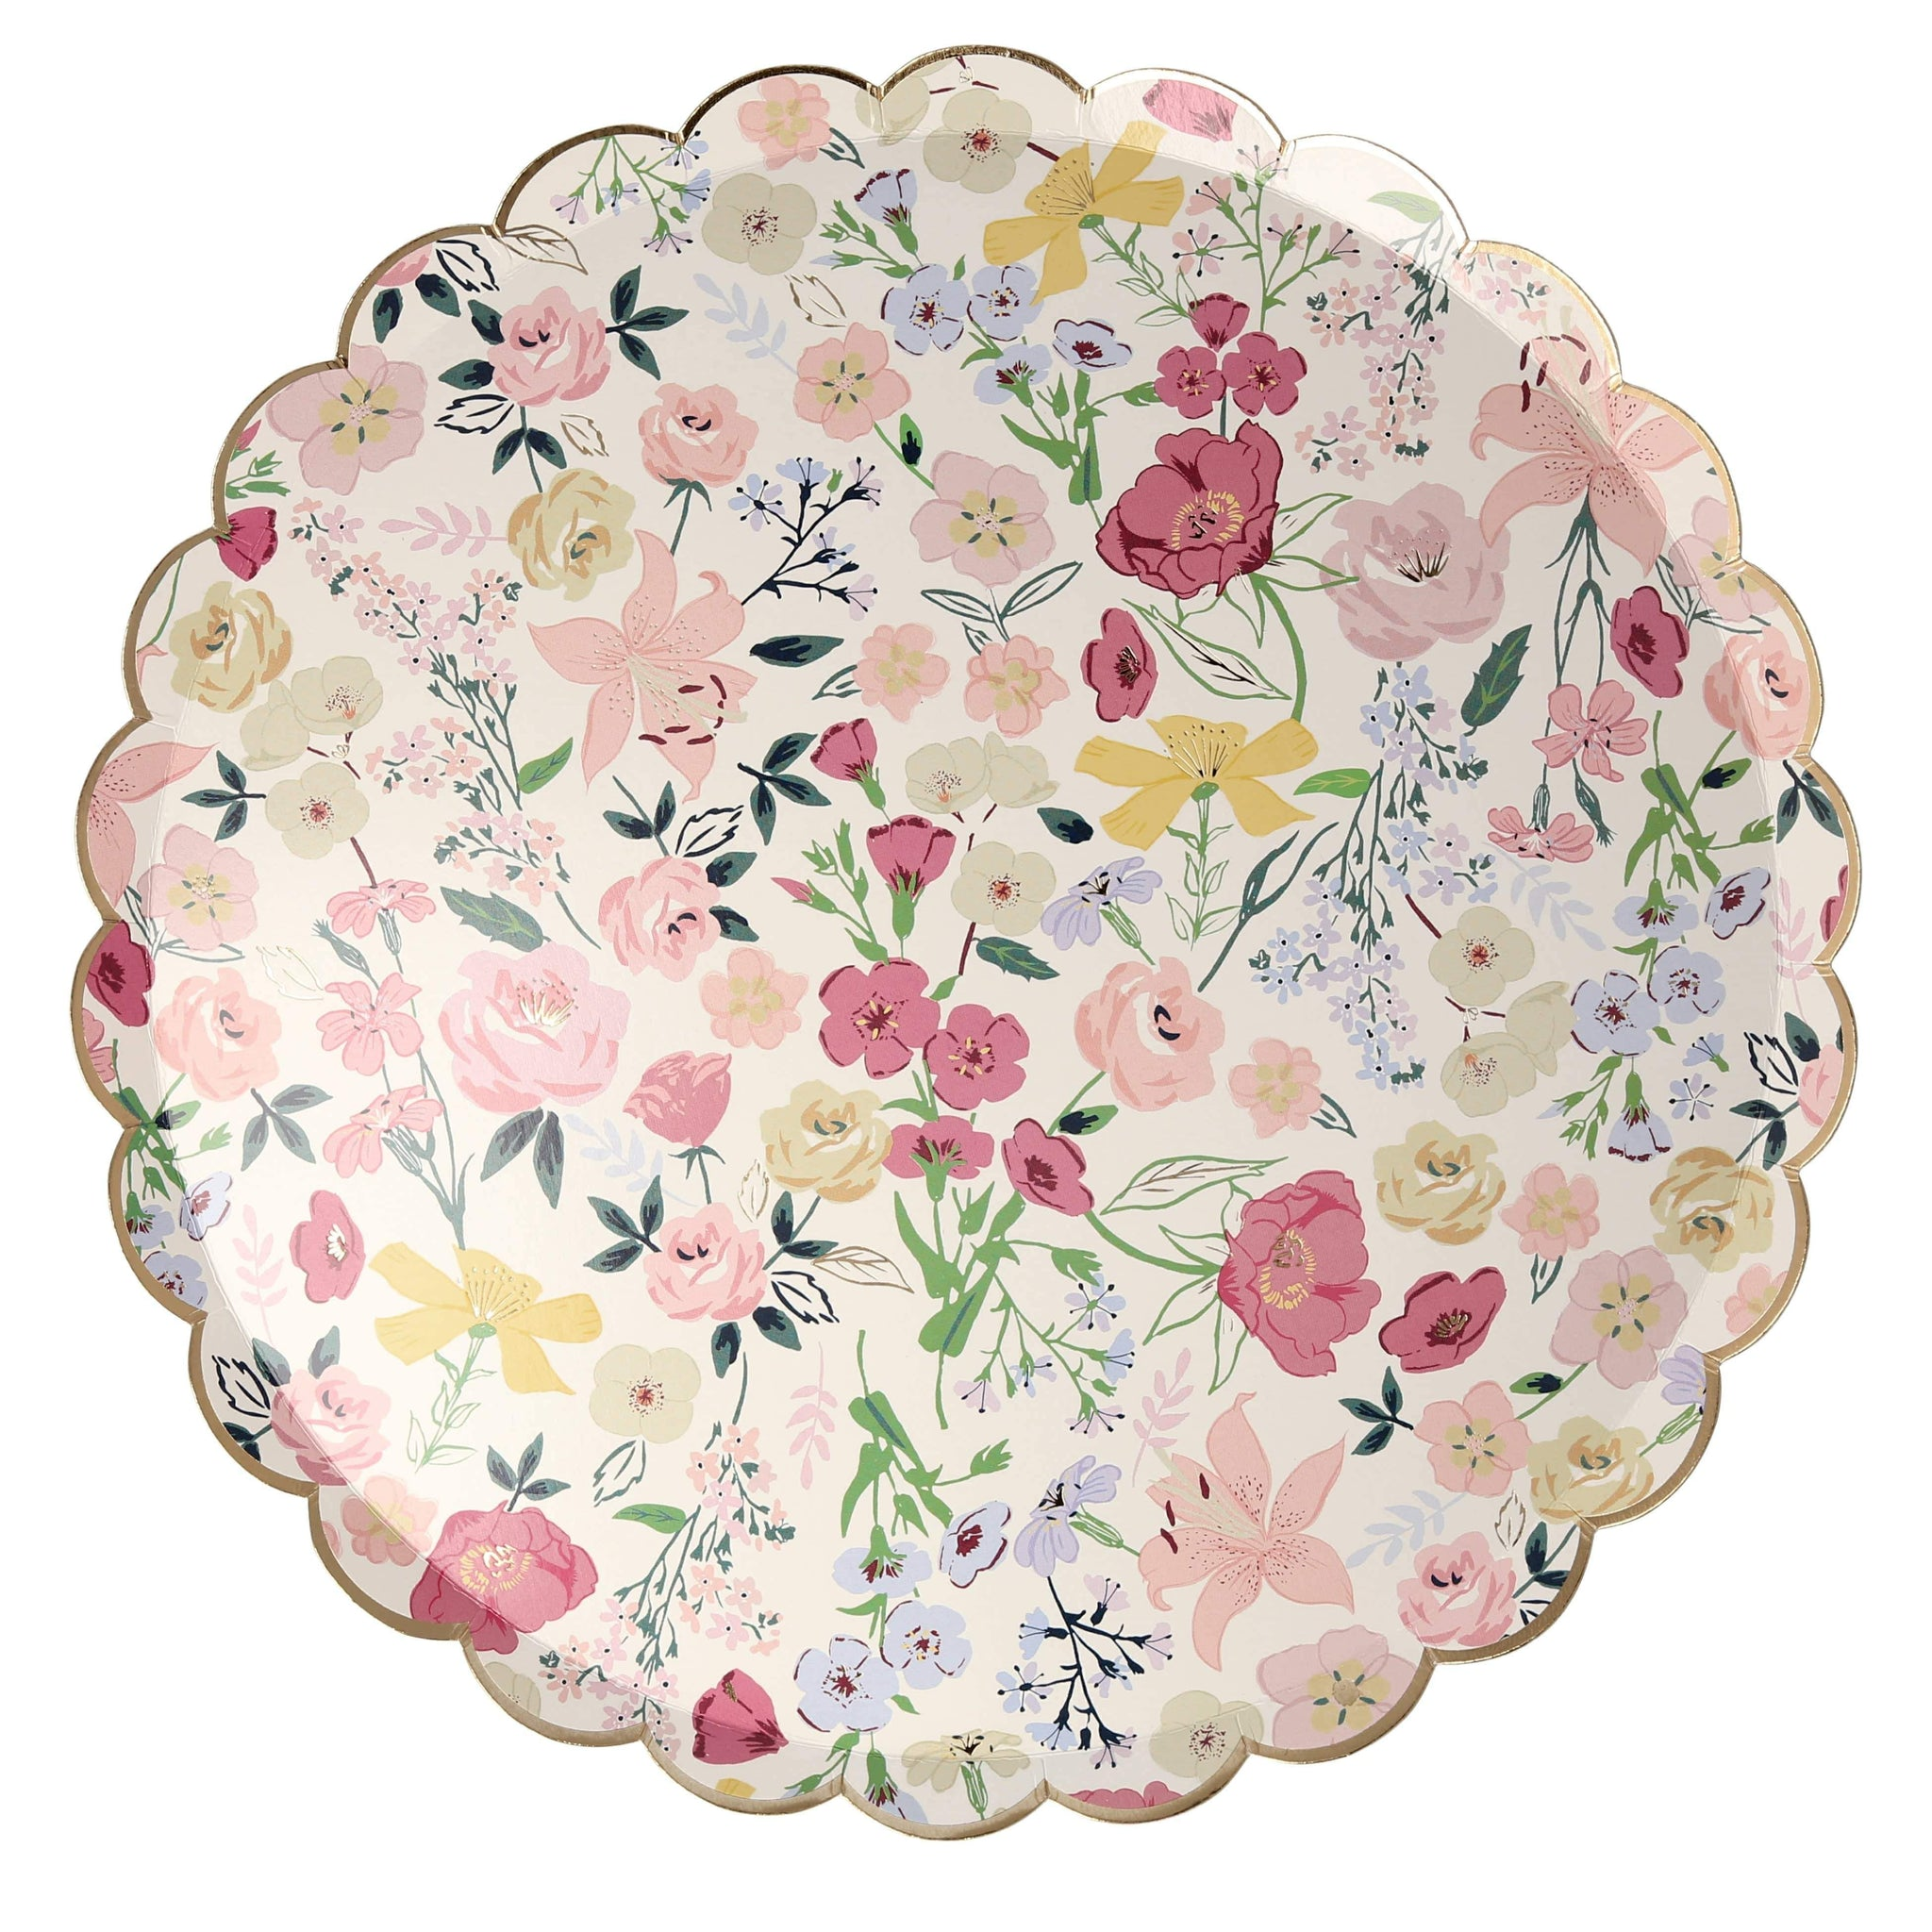 Garden party plates for tea party, engagement, wedding or anniversary | Meri Meri UK